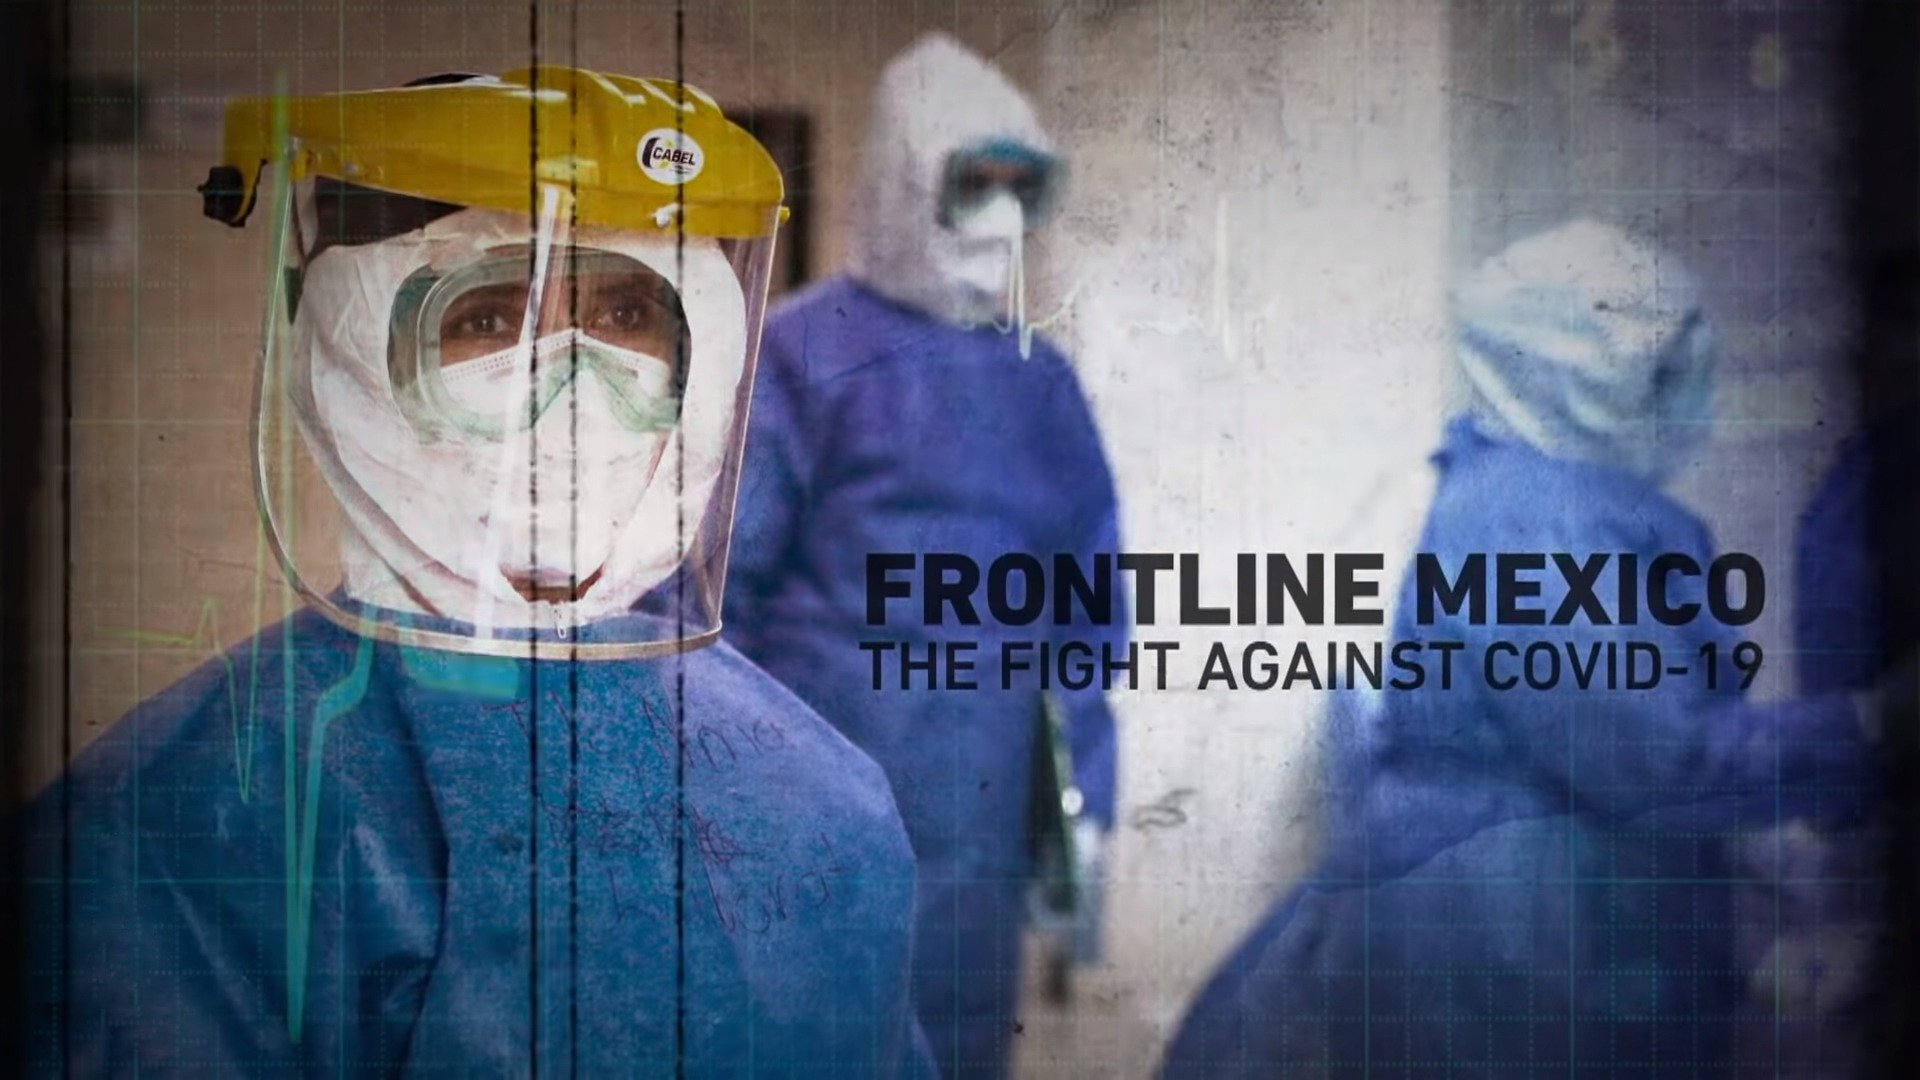 Frontline Mexico : The Fight Against COVID-19